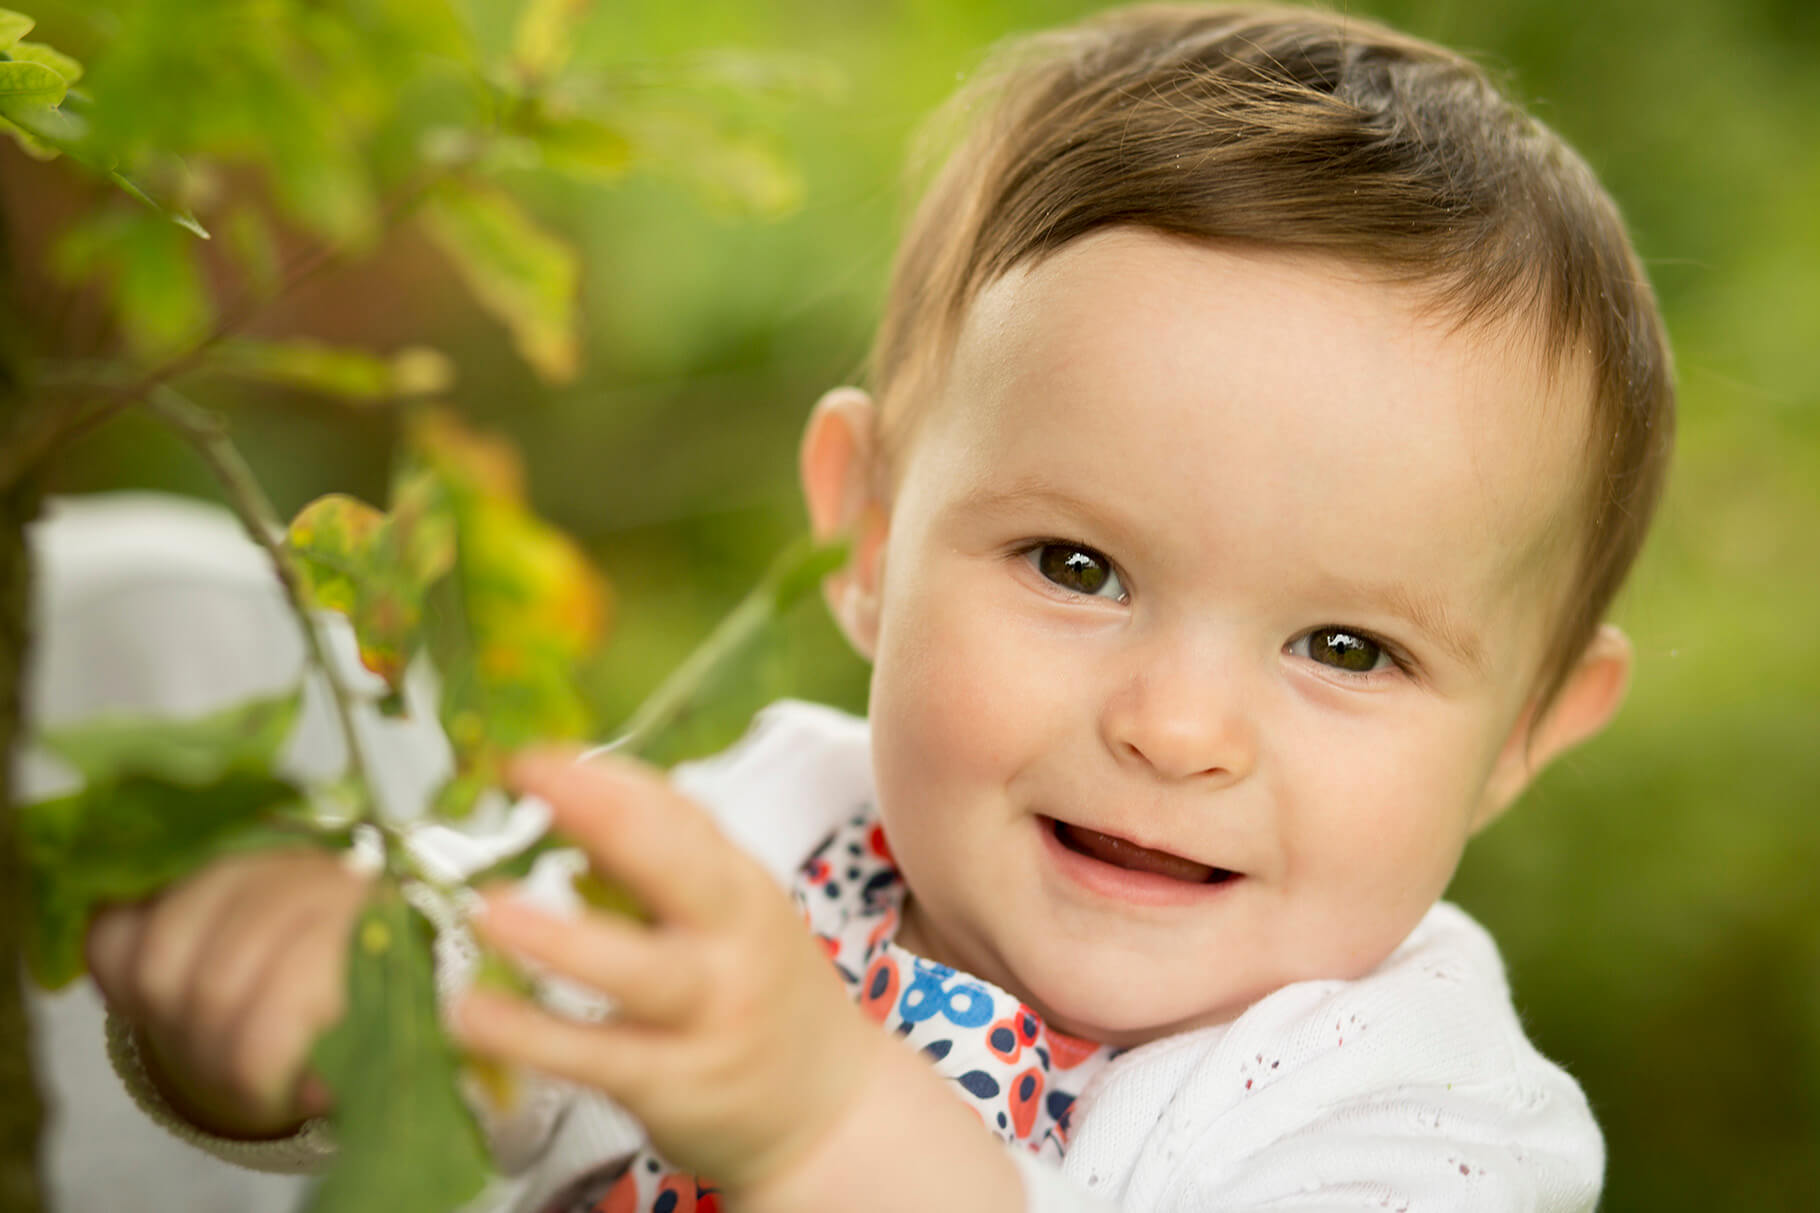 How to take better photographs of your children